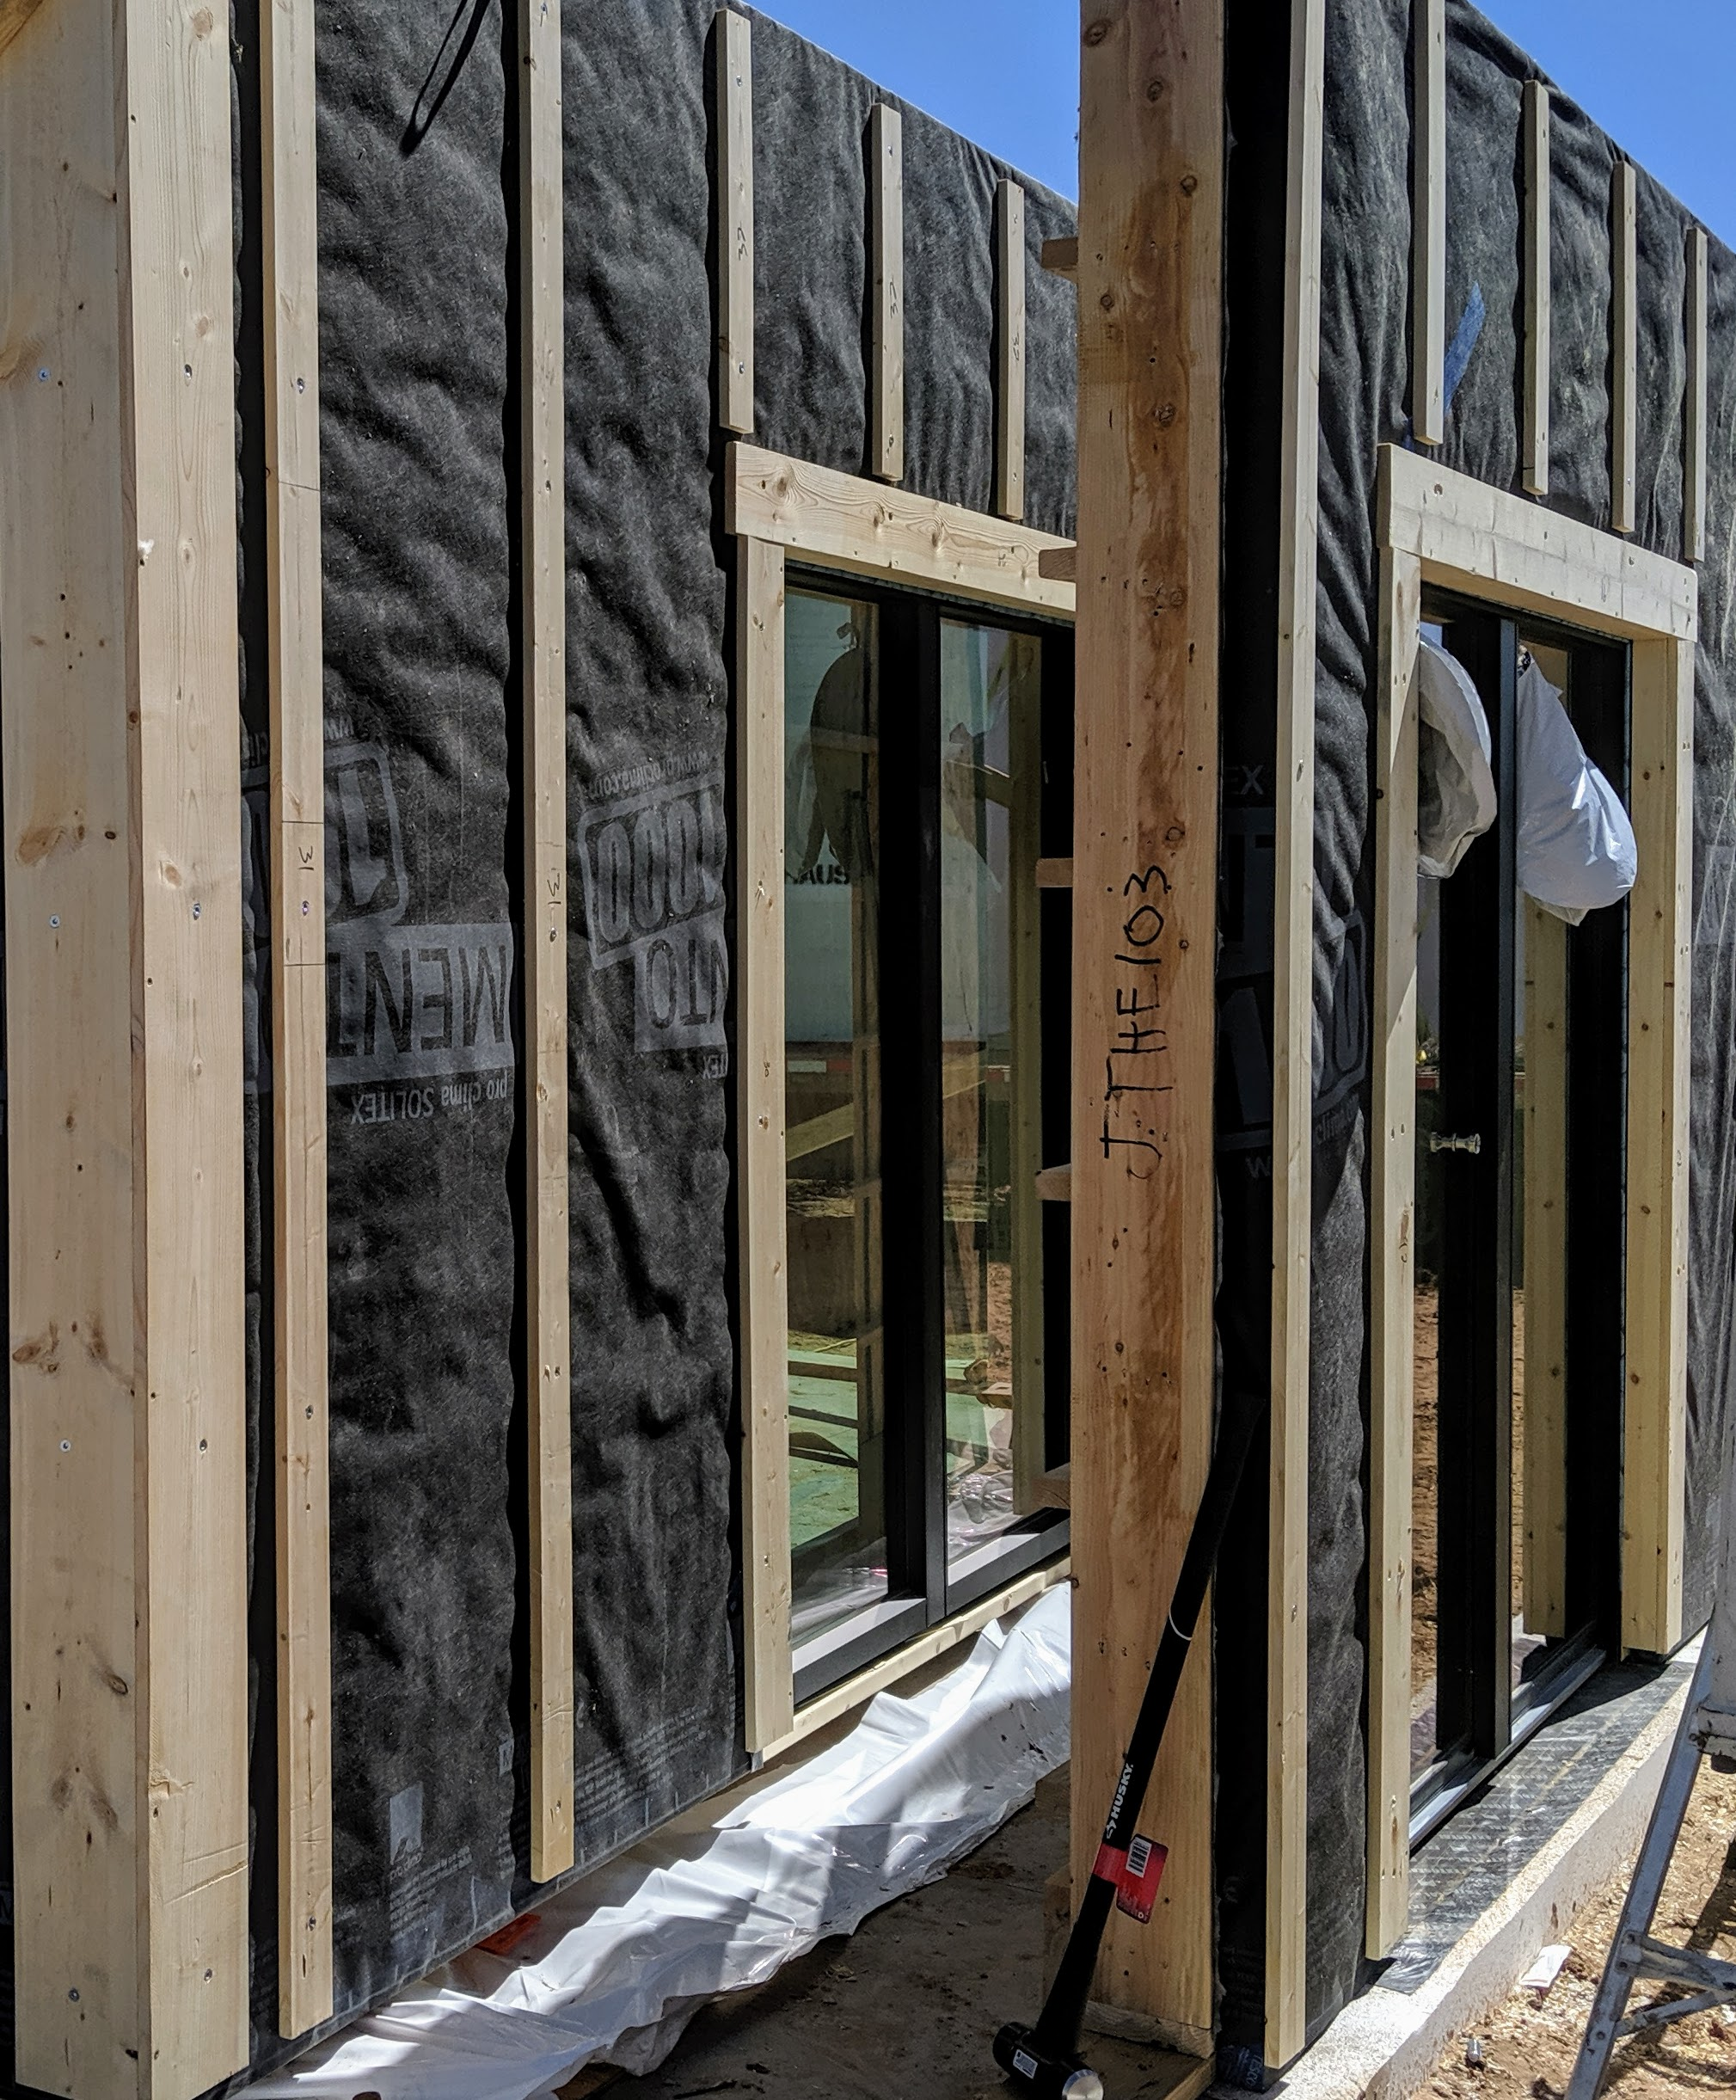 Upgrade to Wood Aluminum Clad Windows & Doors - Pre-Installed, Triple-pane, adjusted to climate for comfort & performance, made in the U.S.A.